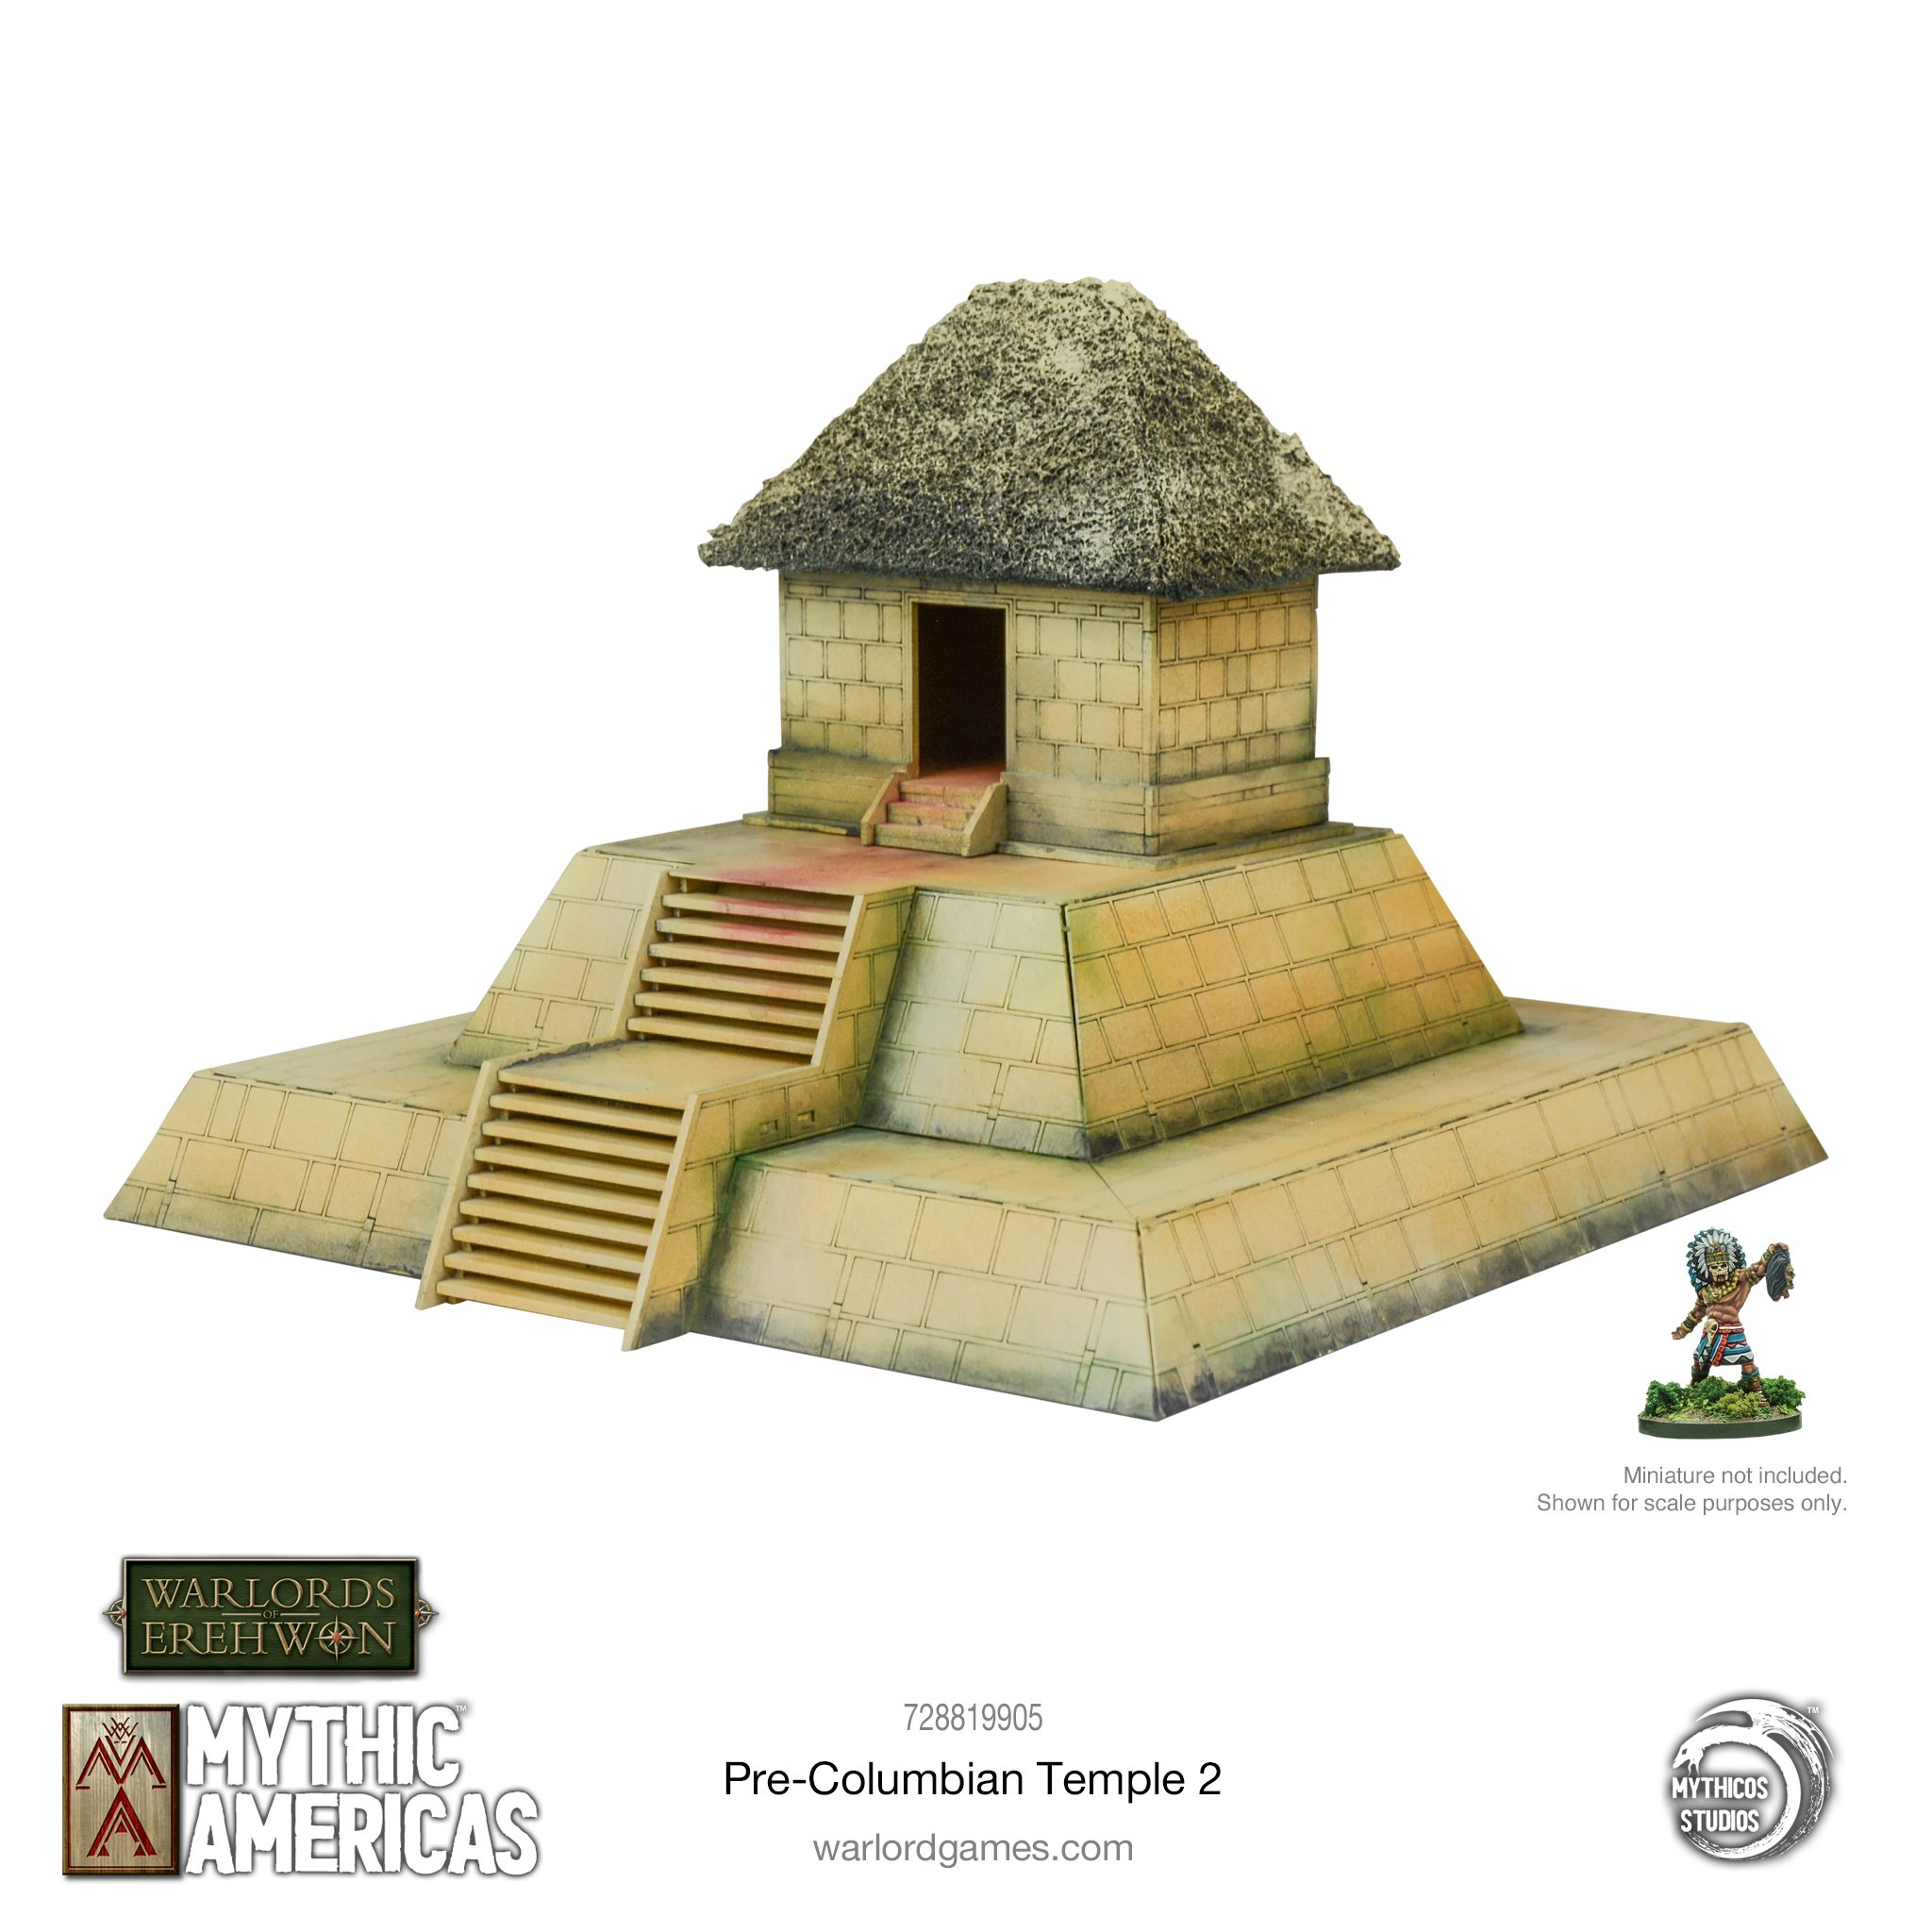 Pre-Columbian Temple #2 - Mythic Americas